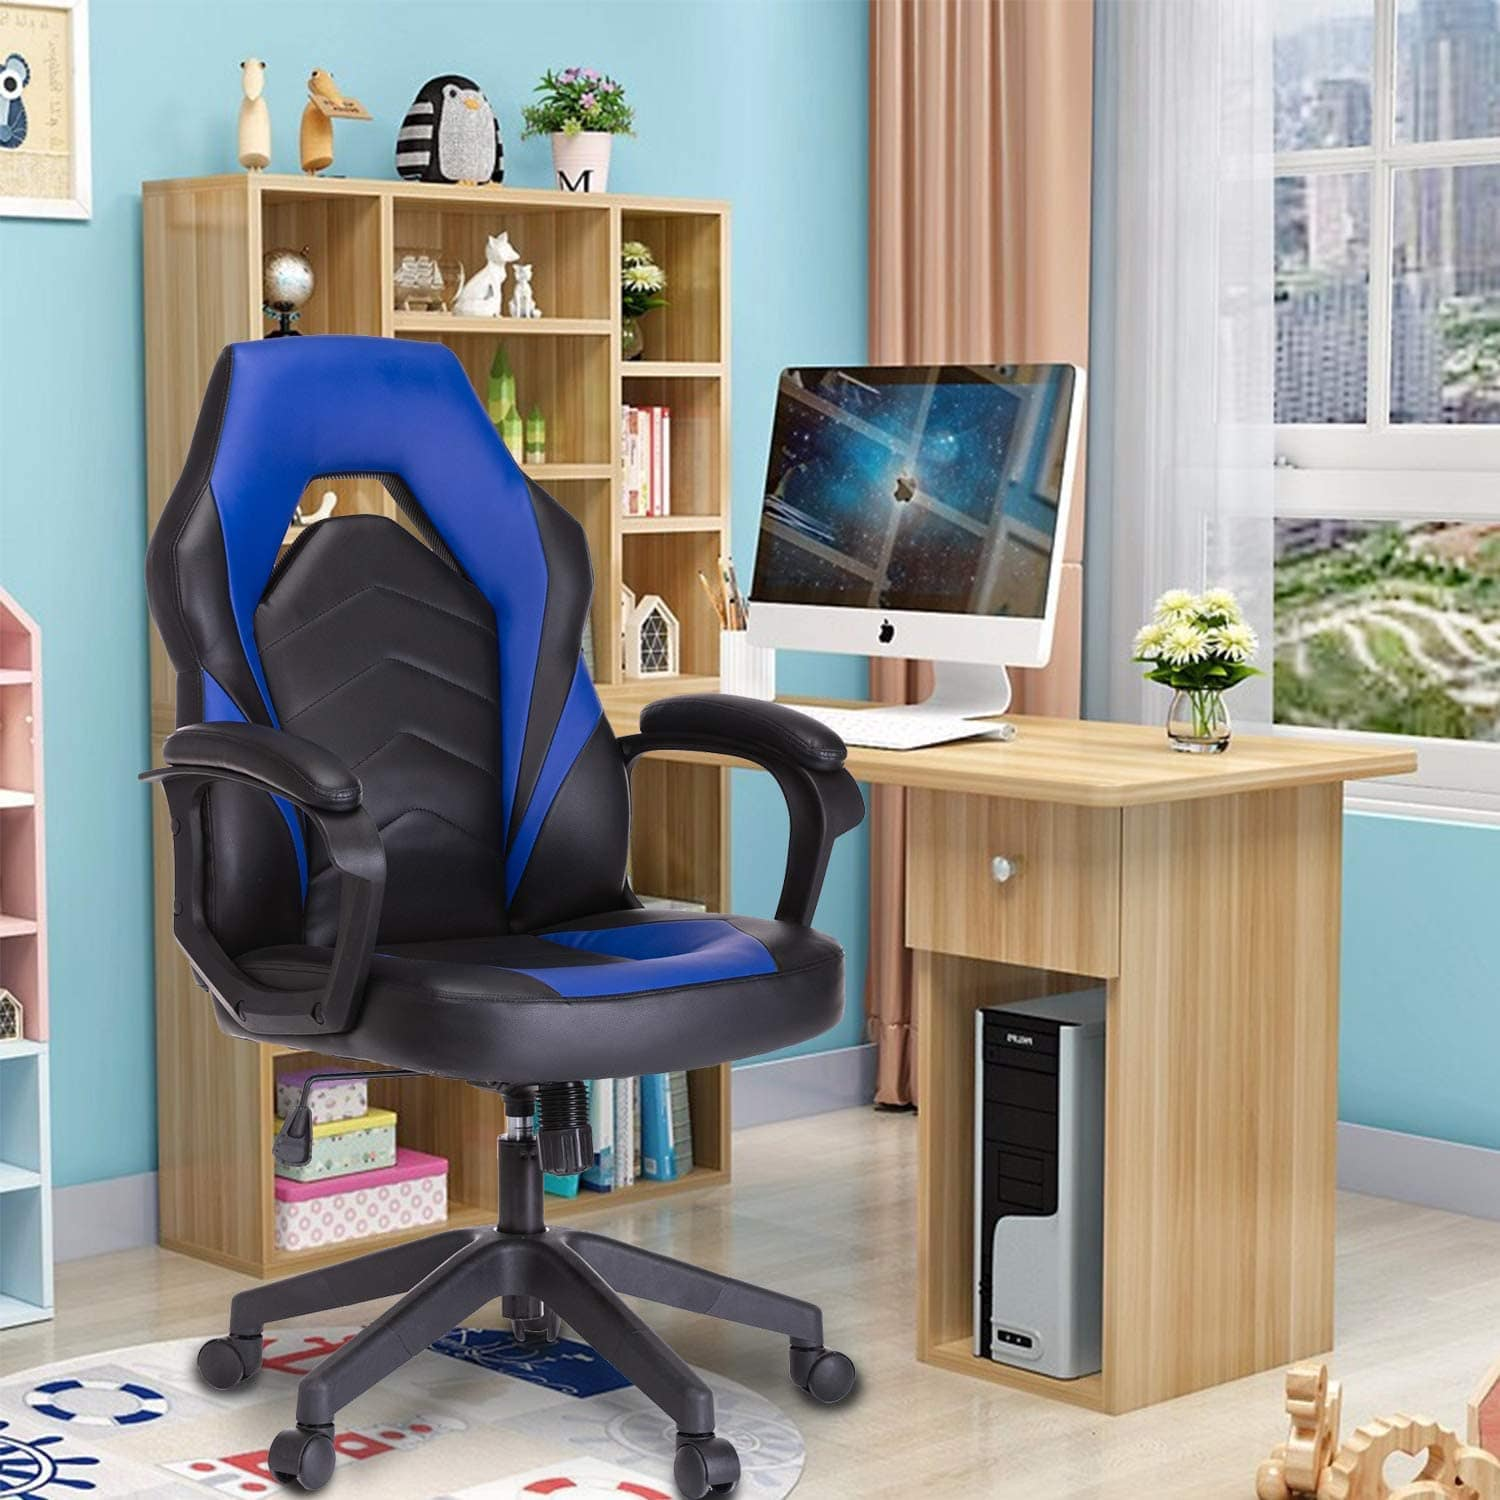 SMUGDESK Racing Gaming Chair Executive Bonded Leather Computer Office Chair with Padding Armrest Blue